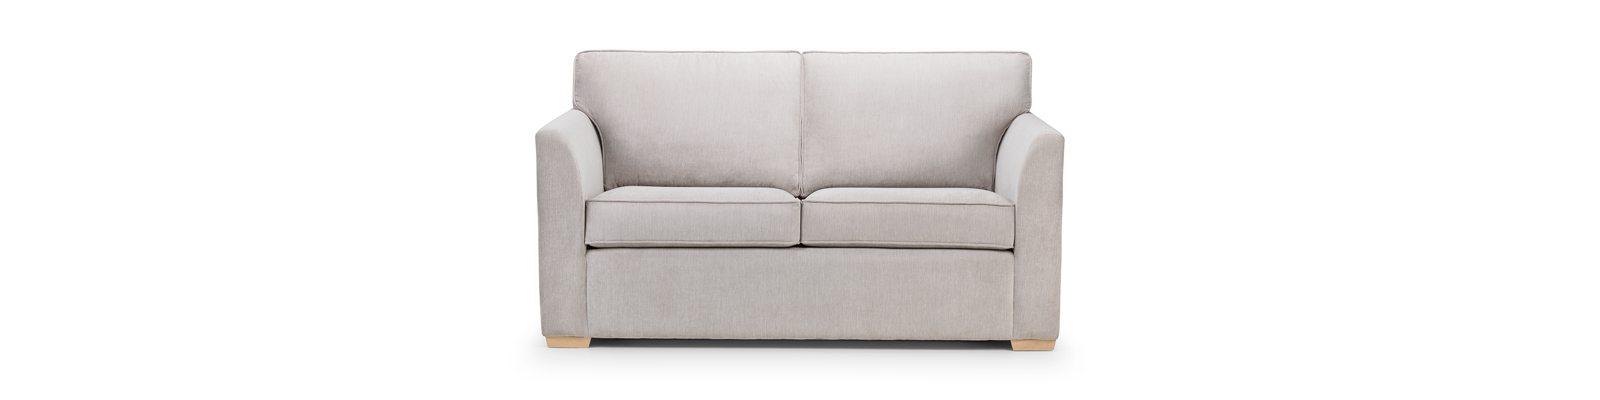 Excellent London Sofa Bed Hypnos Contract Beds Machost Co Dining Chair Design Ideas Machostcouk